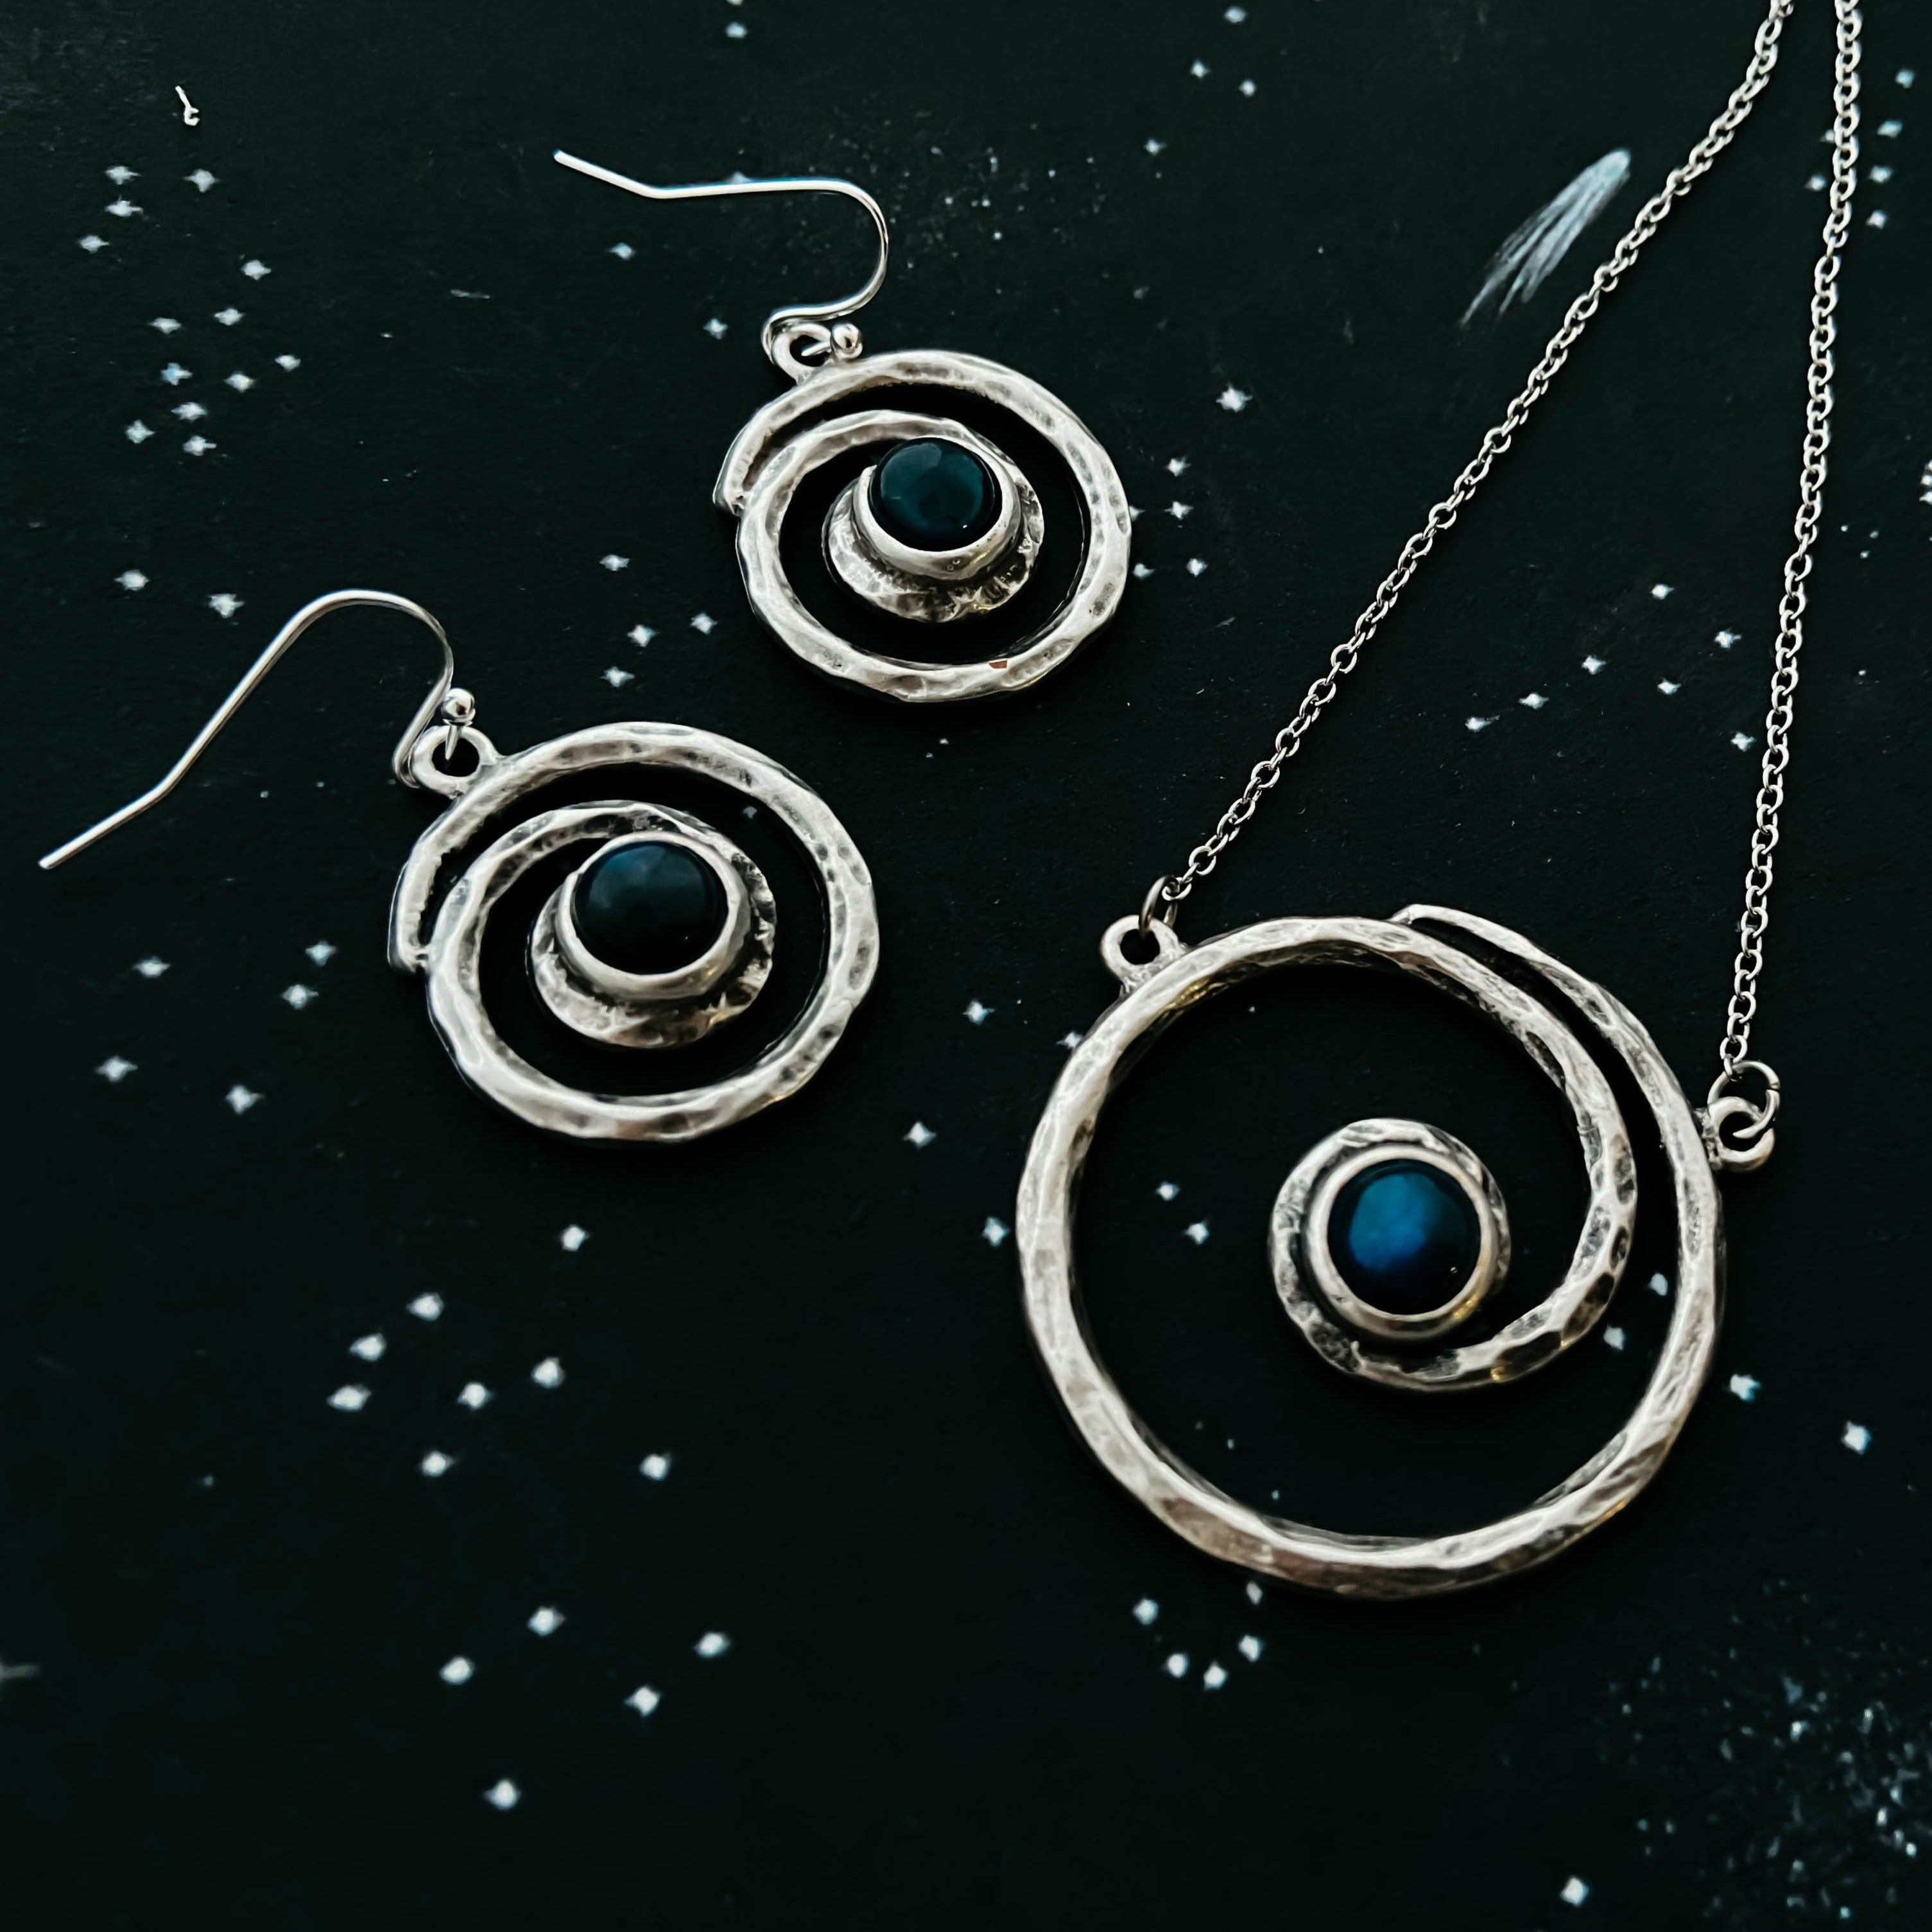 Milky way jewelry set - spiral silver hammered necklace and earrings with labradorite by Yugen Tribe